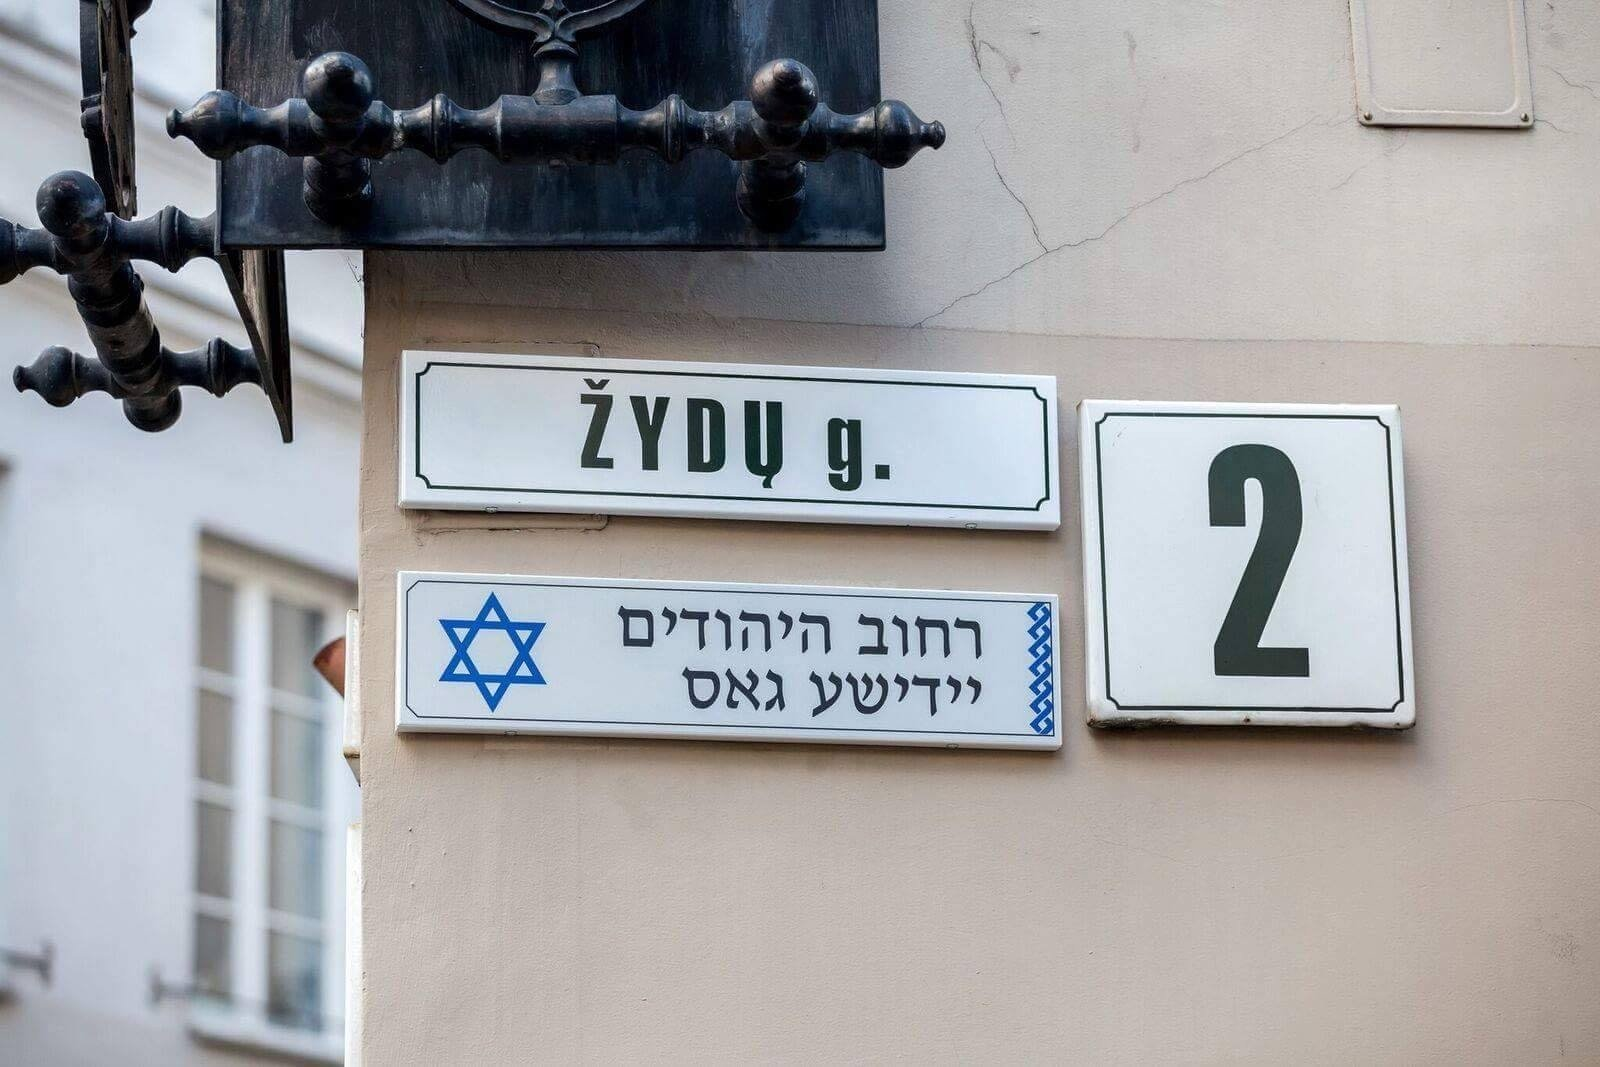 The plate on the house with the name of the street Jewish in Lithuanian